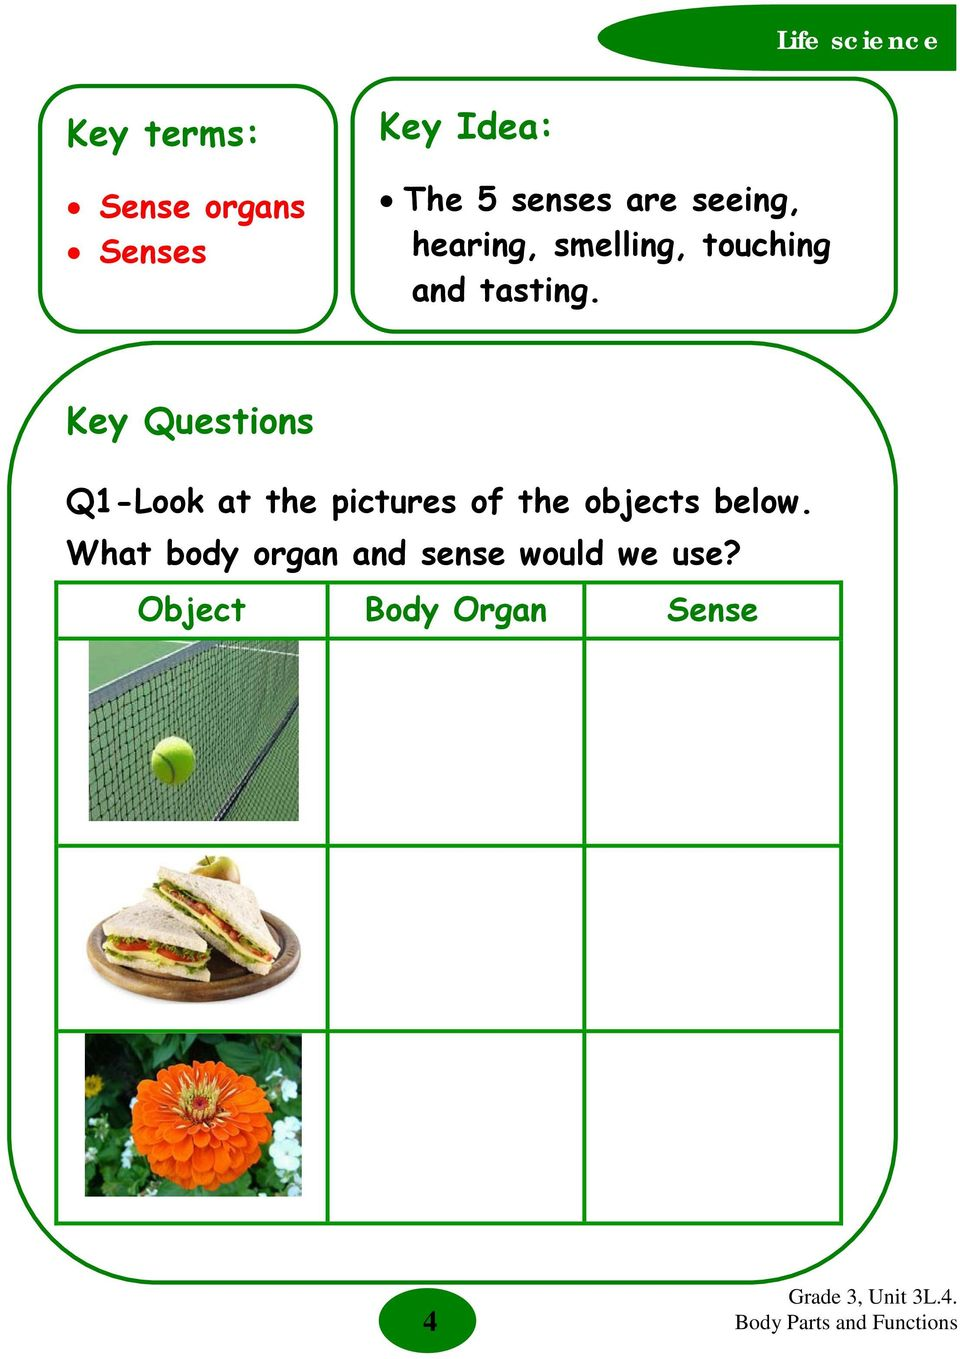 Key Questions Q1-Look at the pictures of the objects